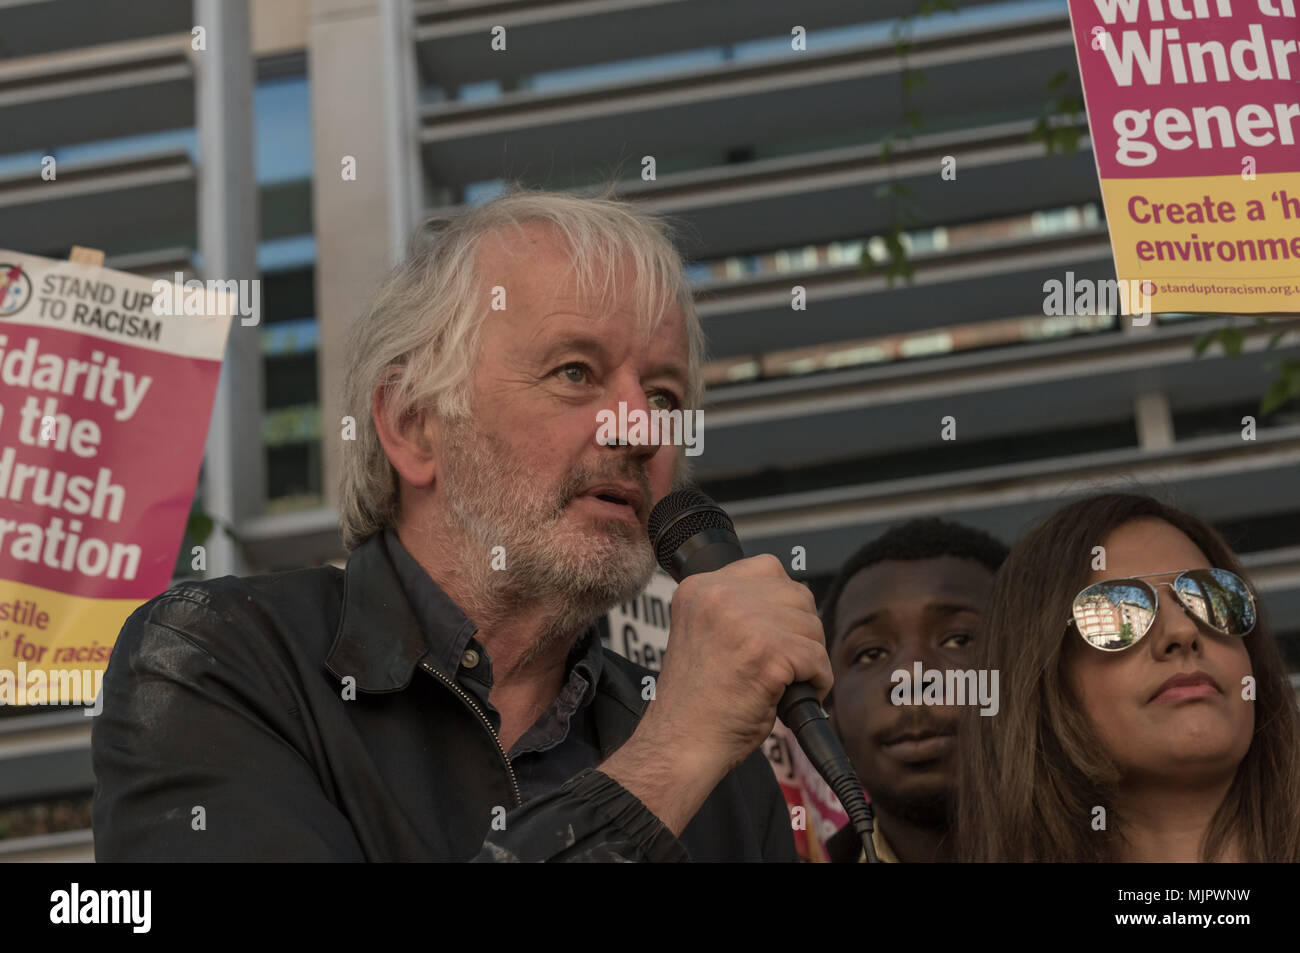 London, UK. 5th May 2018. Steve Hart, Unite Against Fascism speaks at the protest outside the Home Office calling for Theresa May's racist 2014 Immigration Act to be repealed and an immediate end to the deportation and detention of Commonwealth citizens, with those already deported to be bought back to the UK. There should be an end to the 'hostile environment' for all Credit: Peter Marshall/Alamy Live News - Stock Image